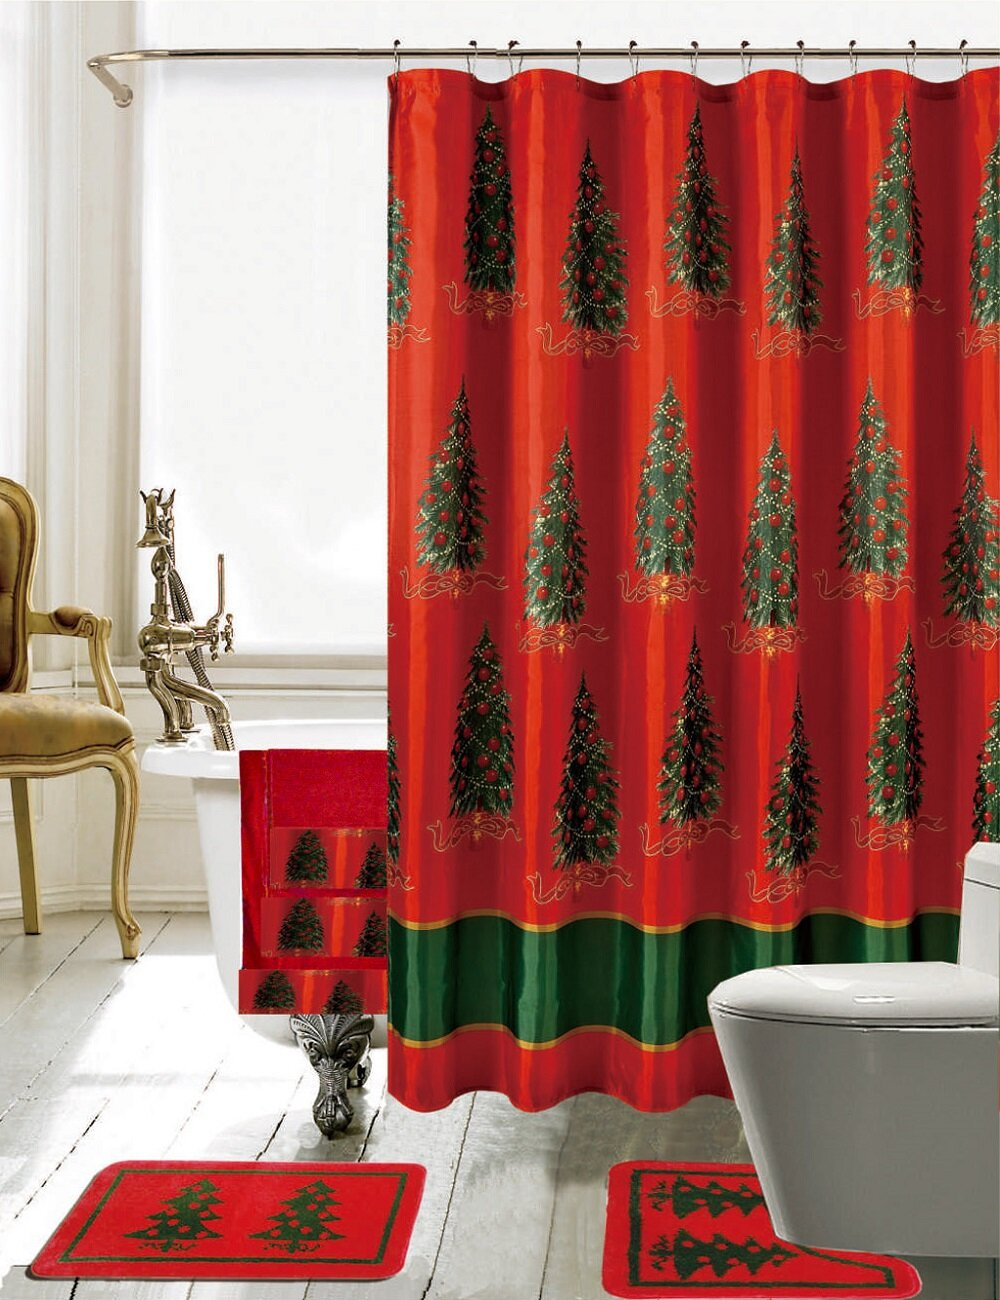 Daniels Bath Christmas Bathroom Decor 18 Piece Shower Curtain Set Ebay